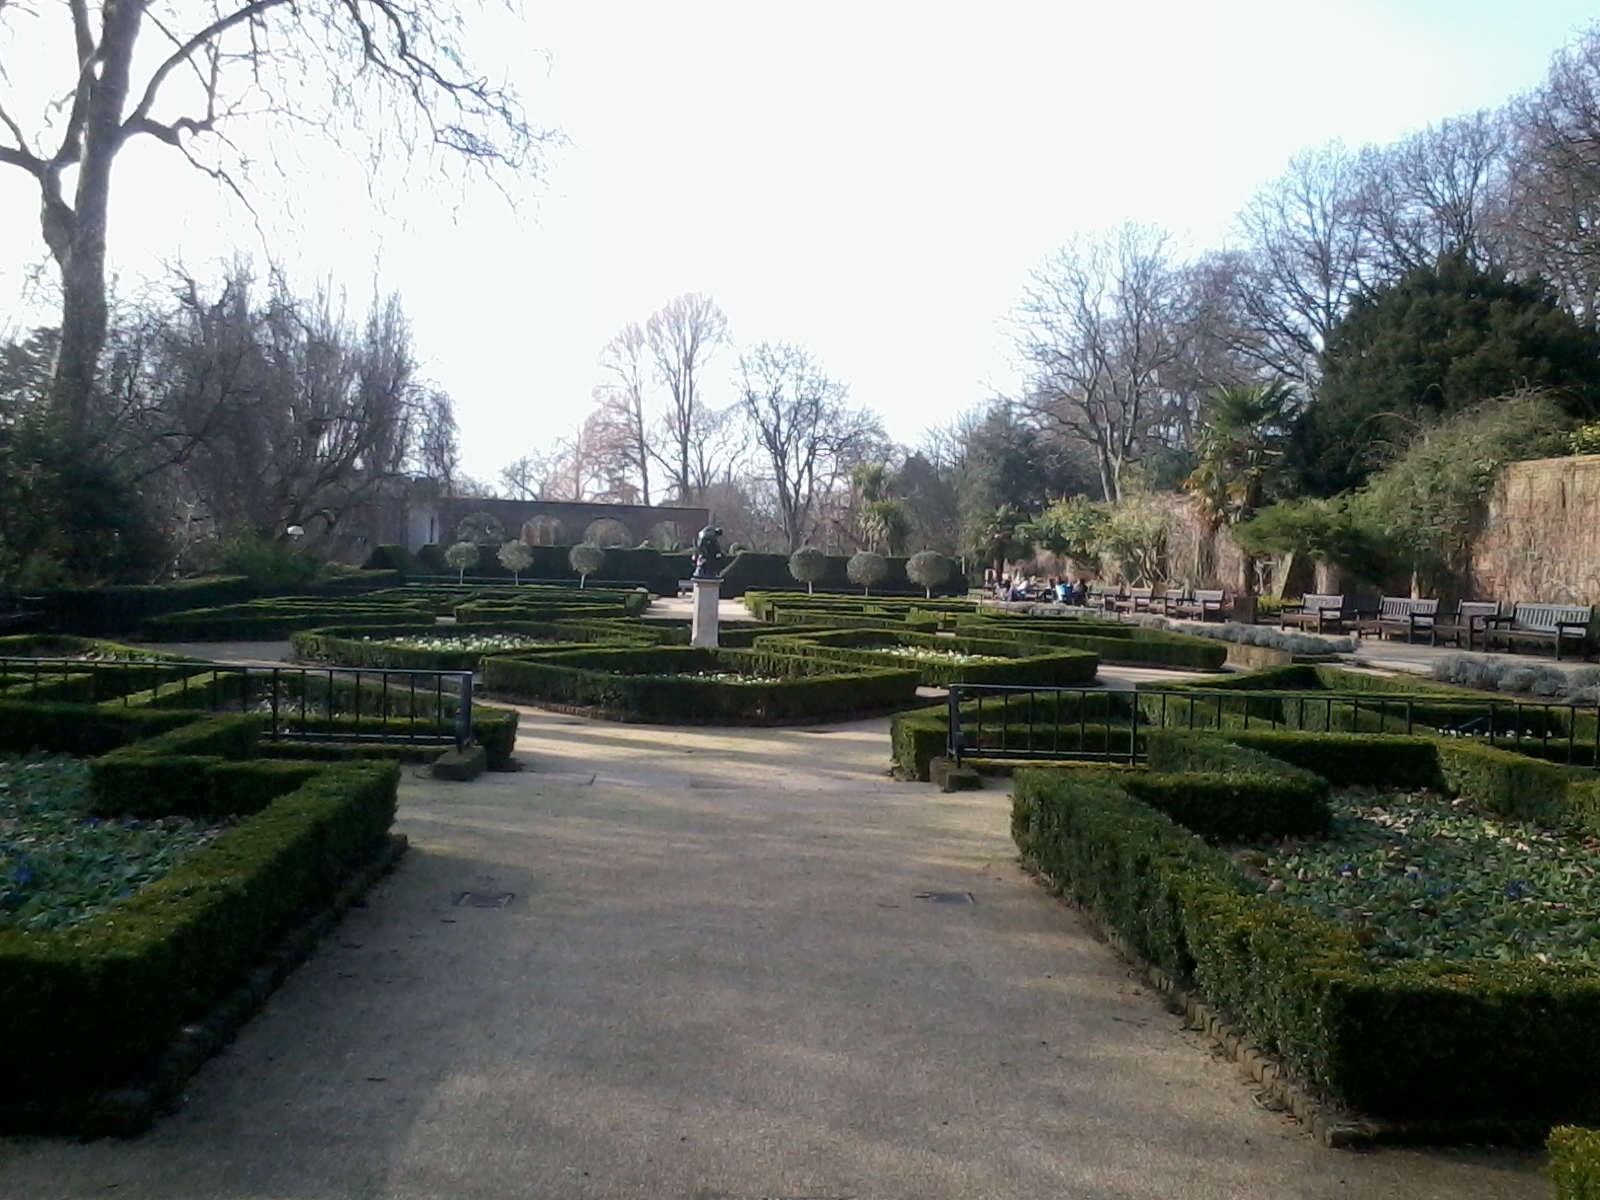 Manicured garden in the sun.